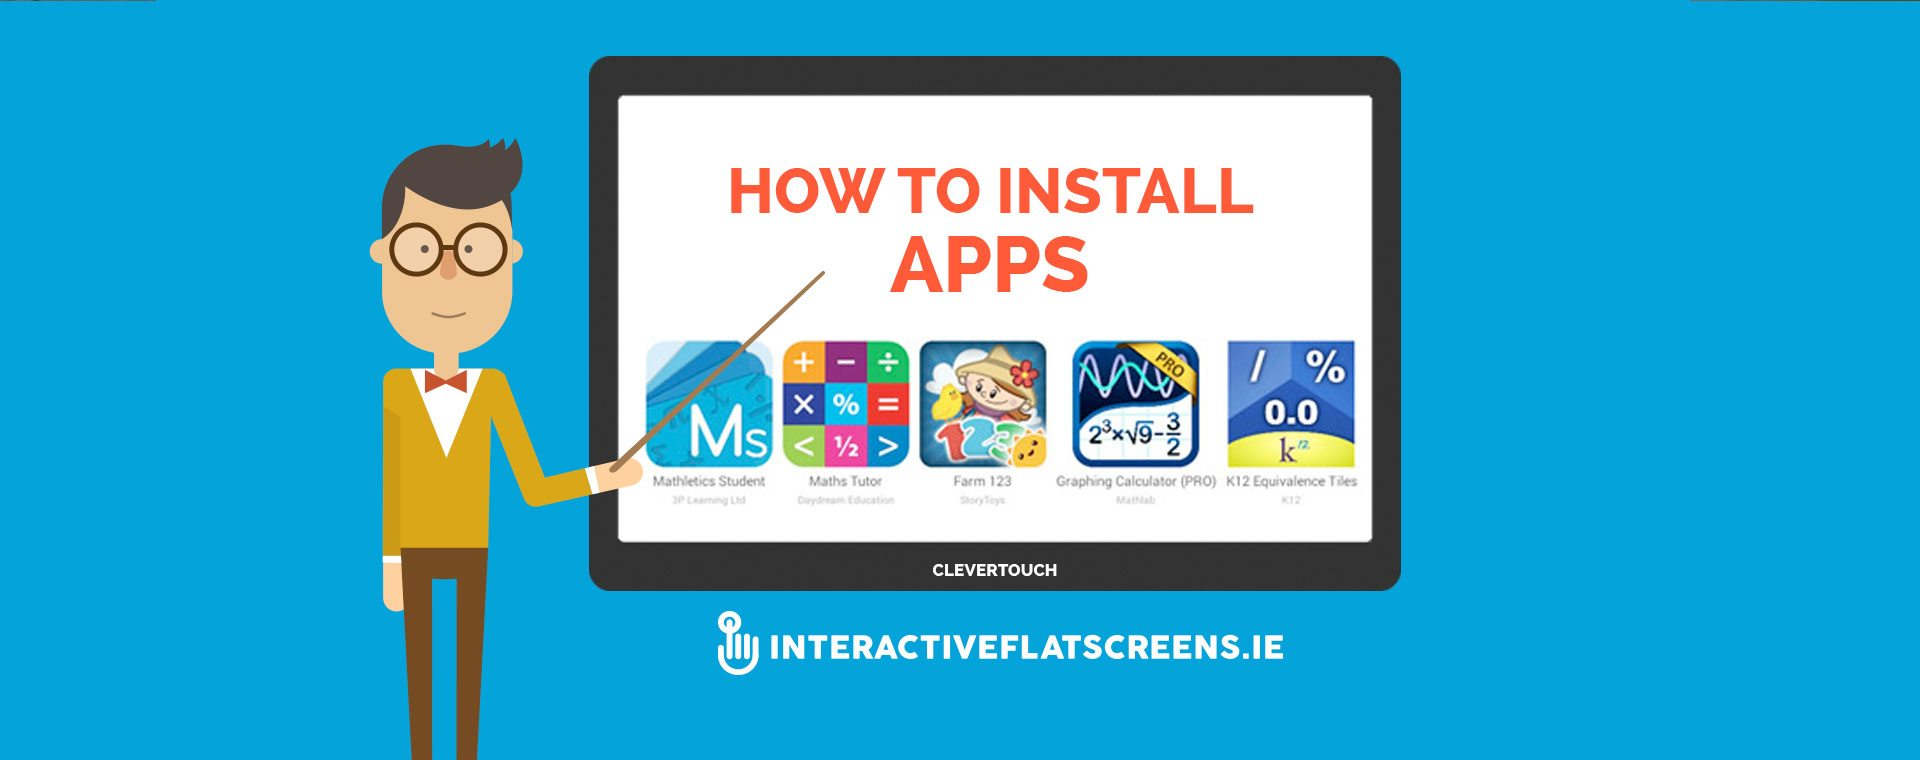 How to Install Apps - Clevertouch - Flat screen - Dublin